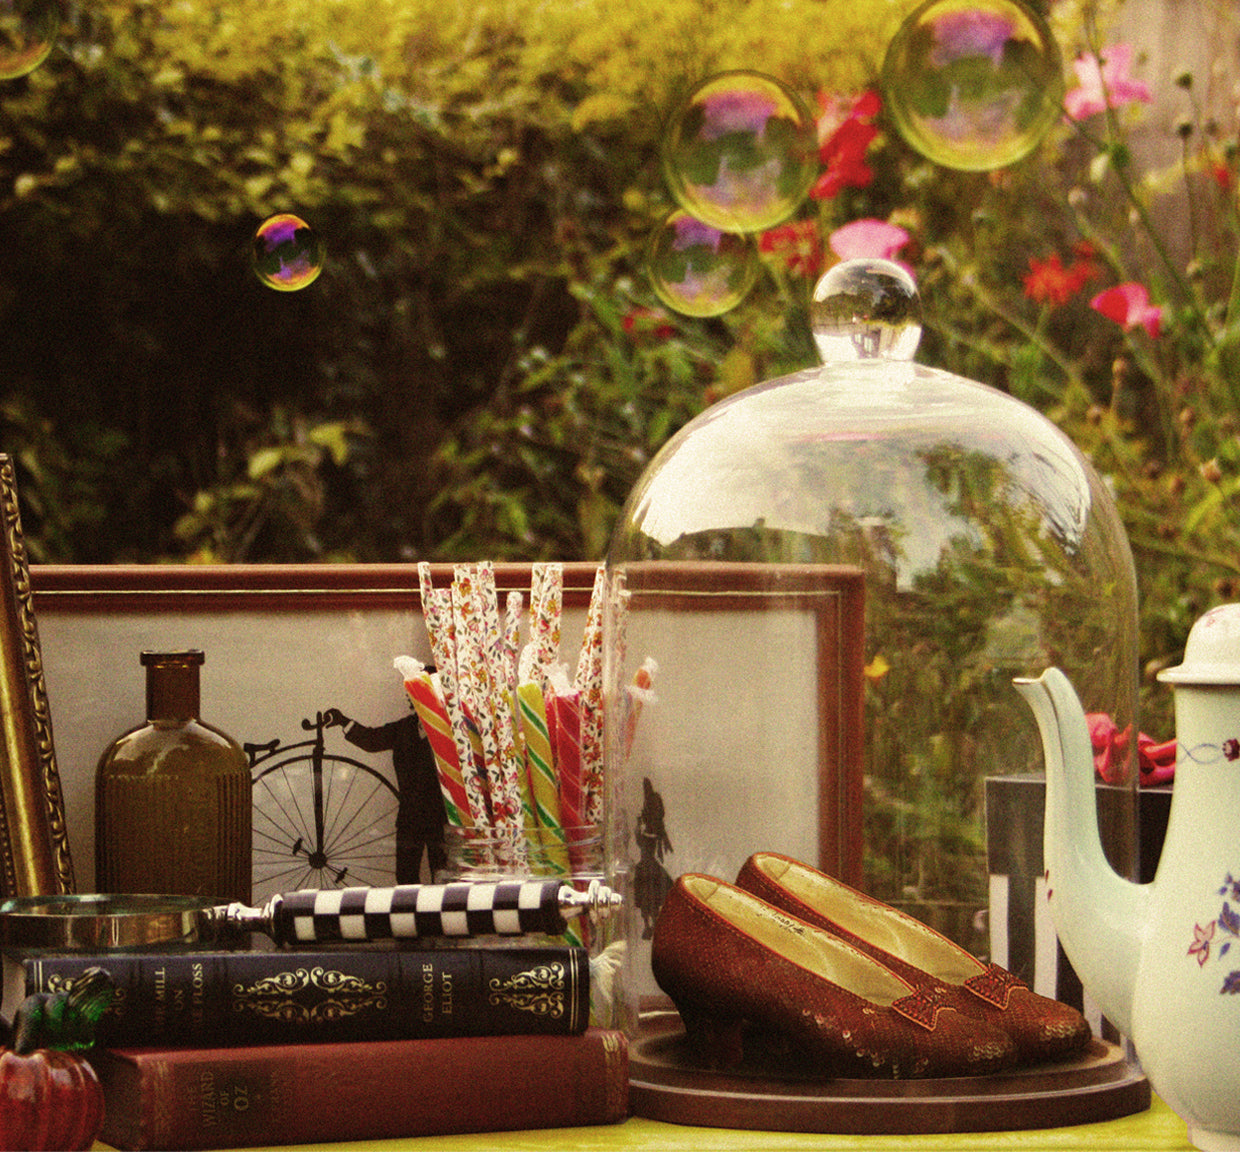 Wizard of Oz-Inspired Afternoon Tea Event